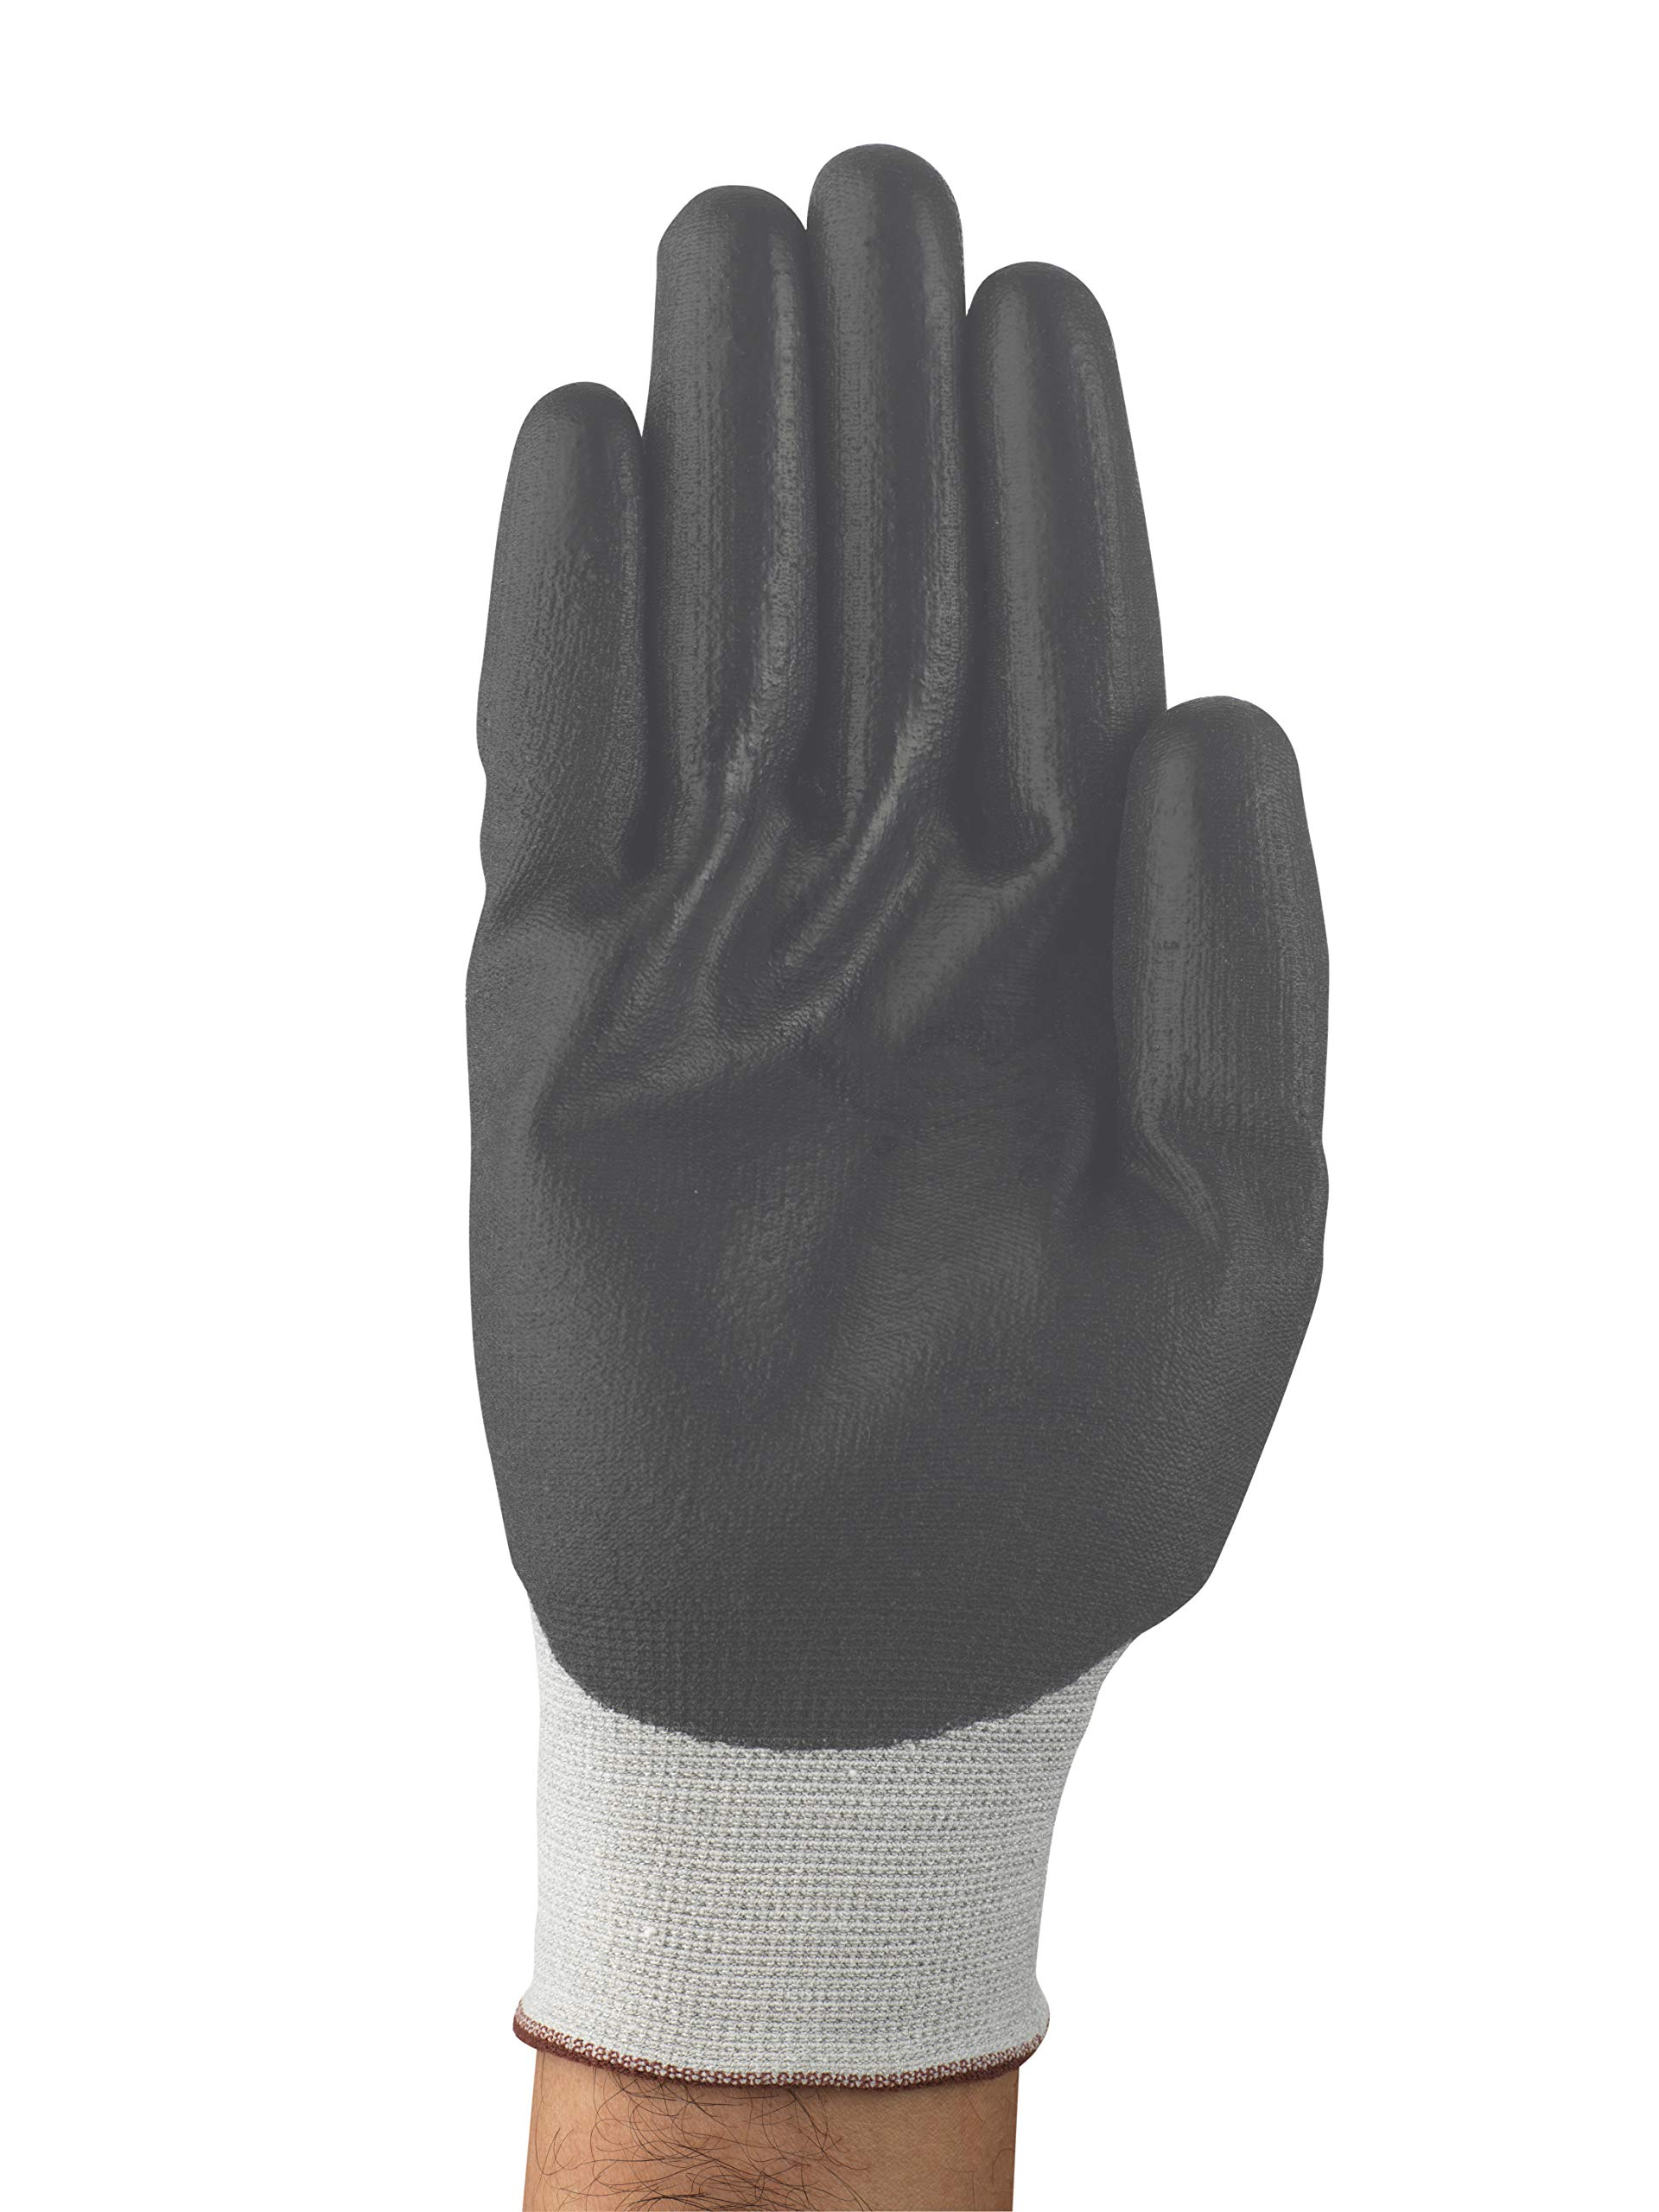 HyFlex 11-731 Light Duty Cut Resistant Gloves, Size 8 by Ansell (Image #5)